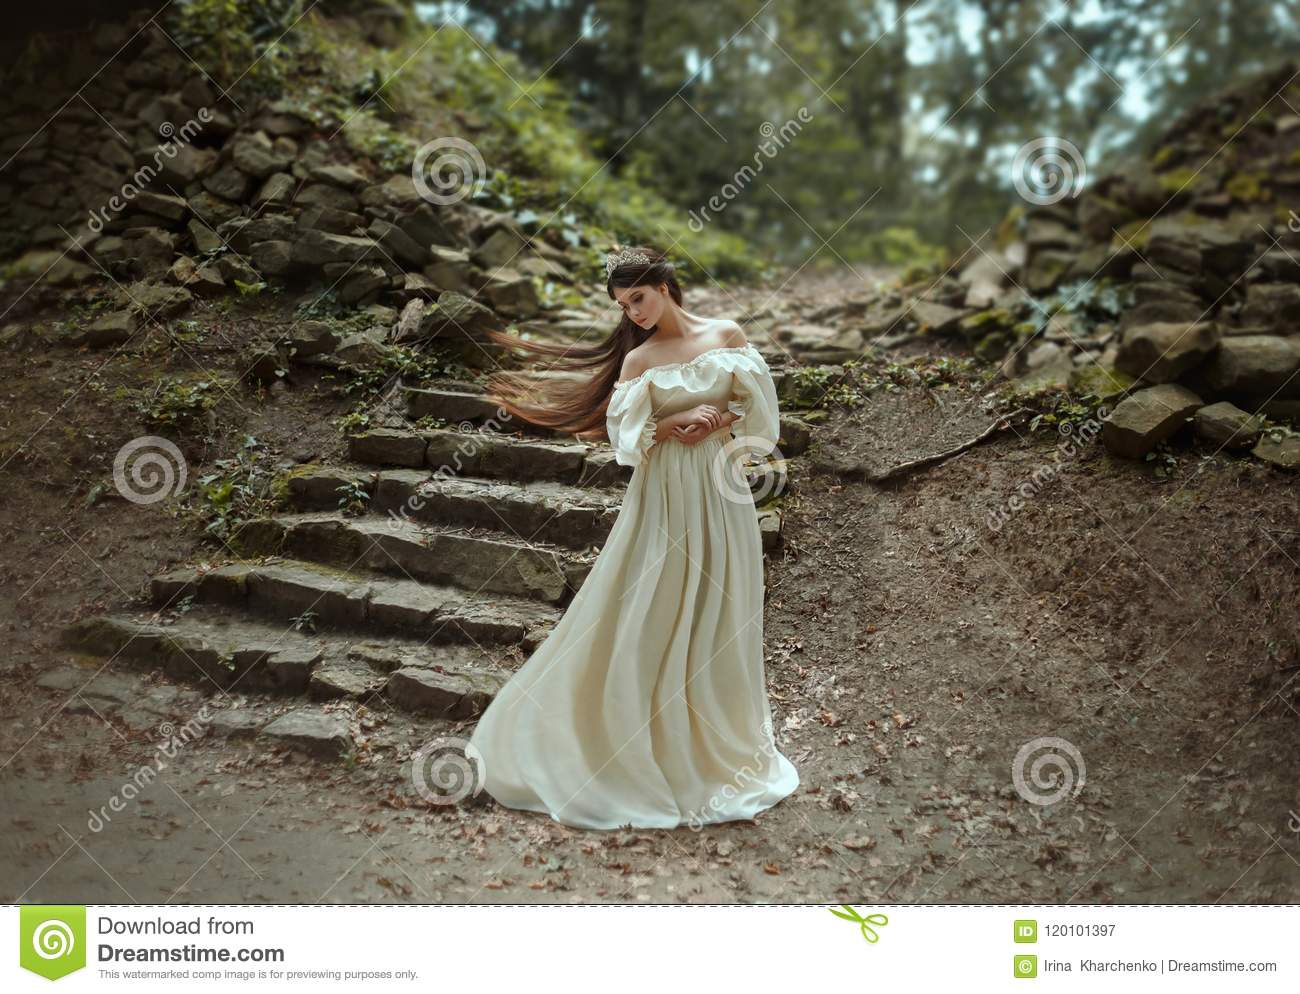 Young princess with very long hair posing against the background of an old stone staircase. The girl has a crystal crown